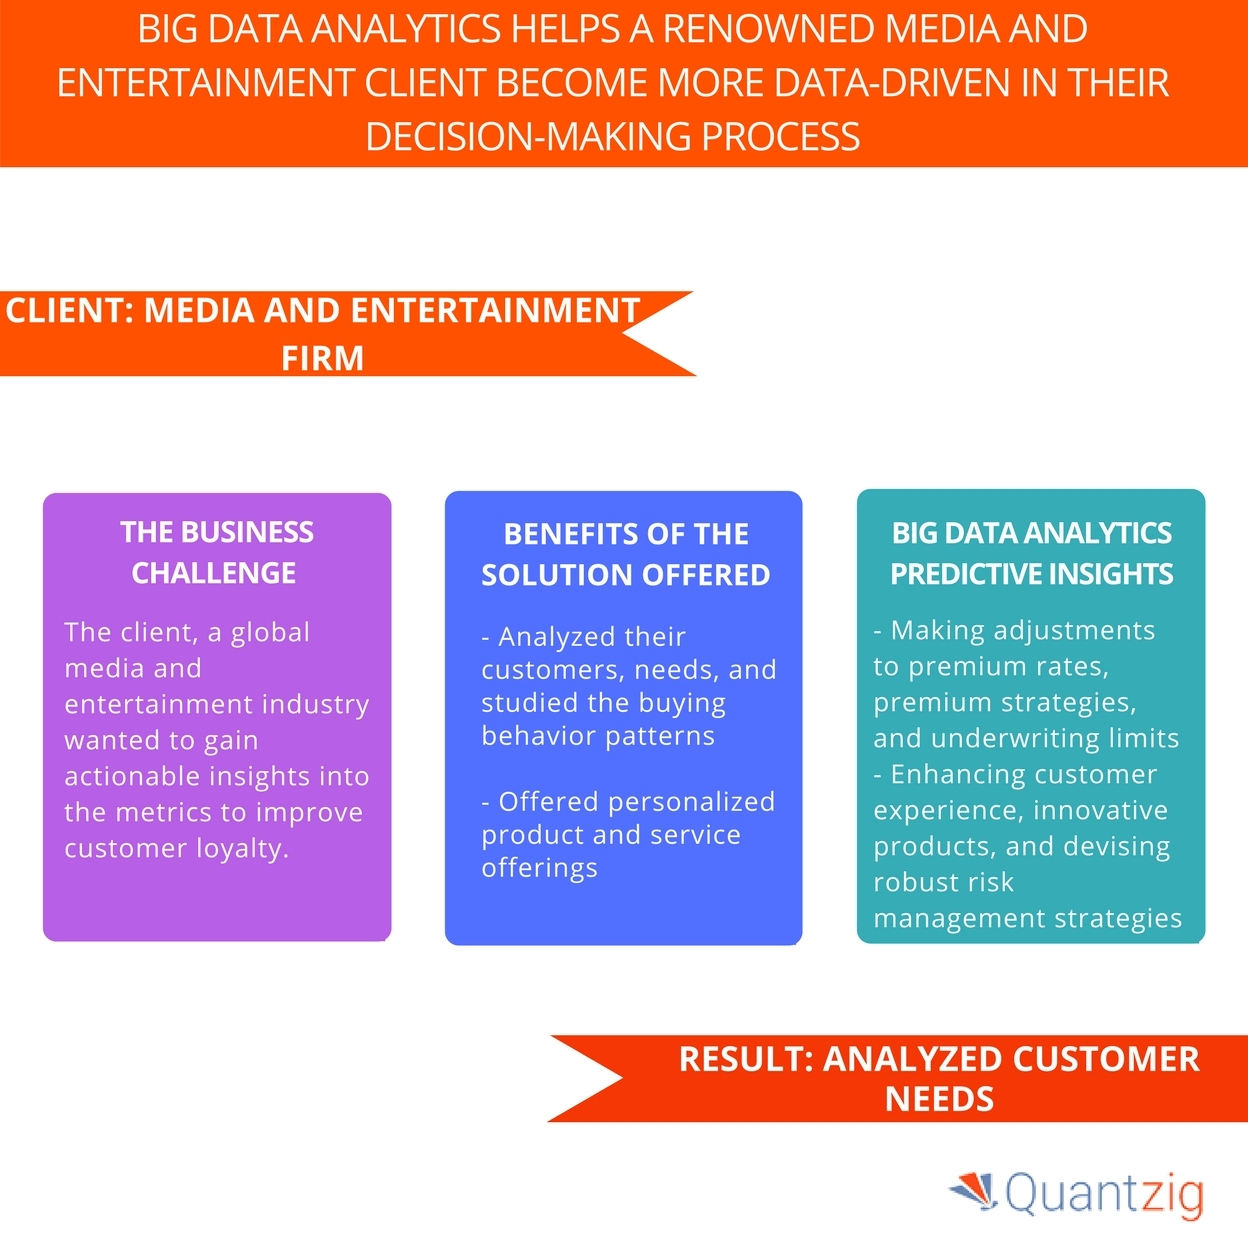 Media Industry: Big Data Analytics Study For Media And Entertainment